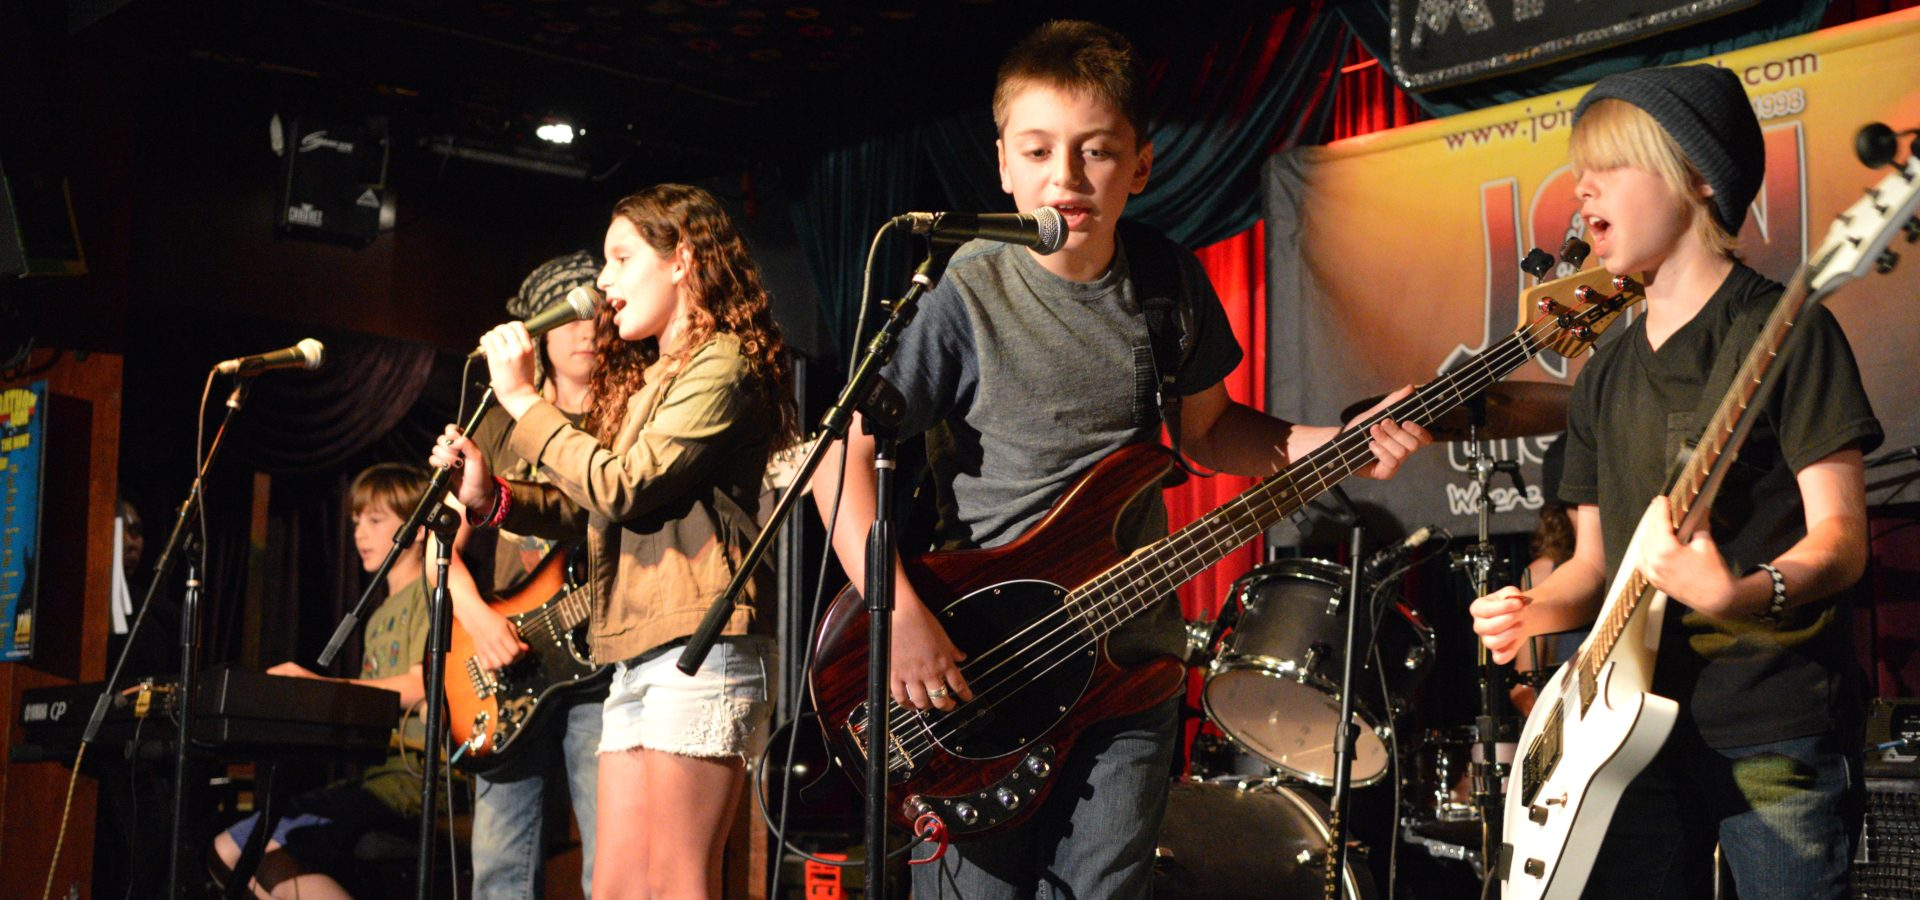 Summer Music Camps - Rock Band - Sherman Oaks, Los Angeles - Join The Band